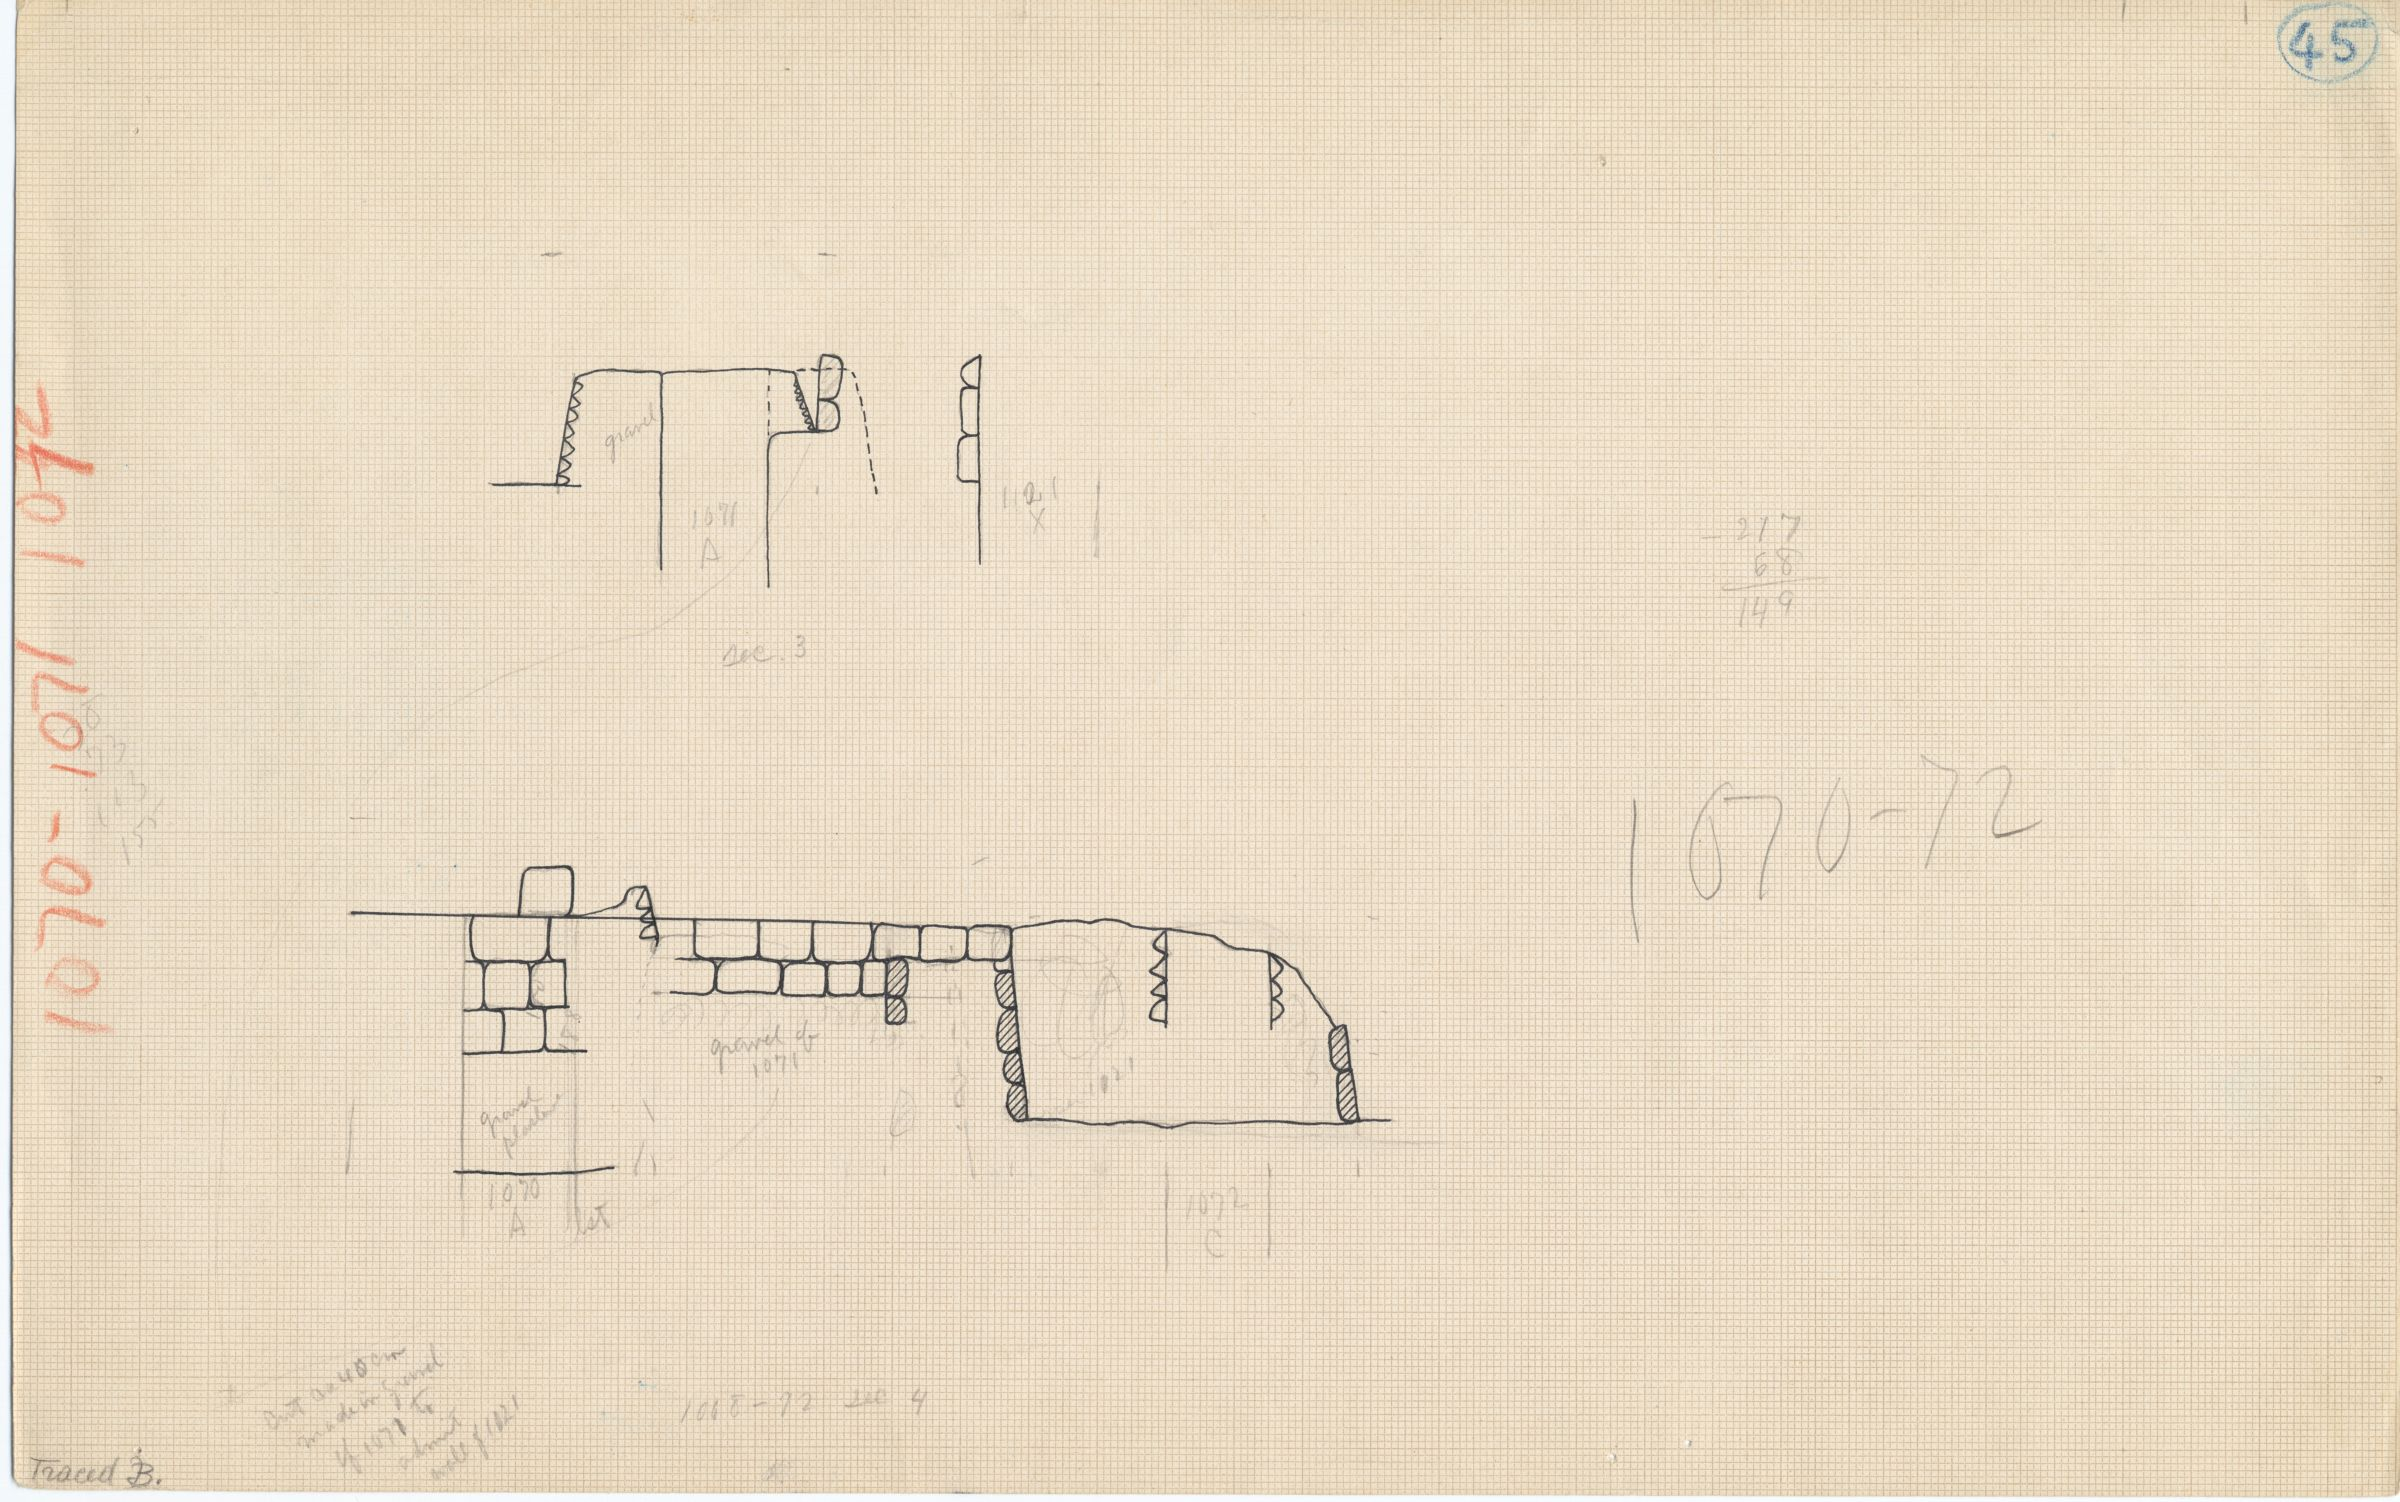 Maps and plans: Section of G 1070, G 1071, G 1072